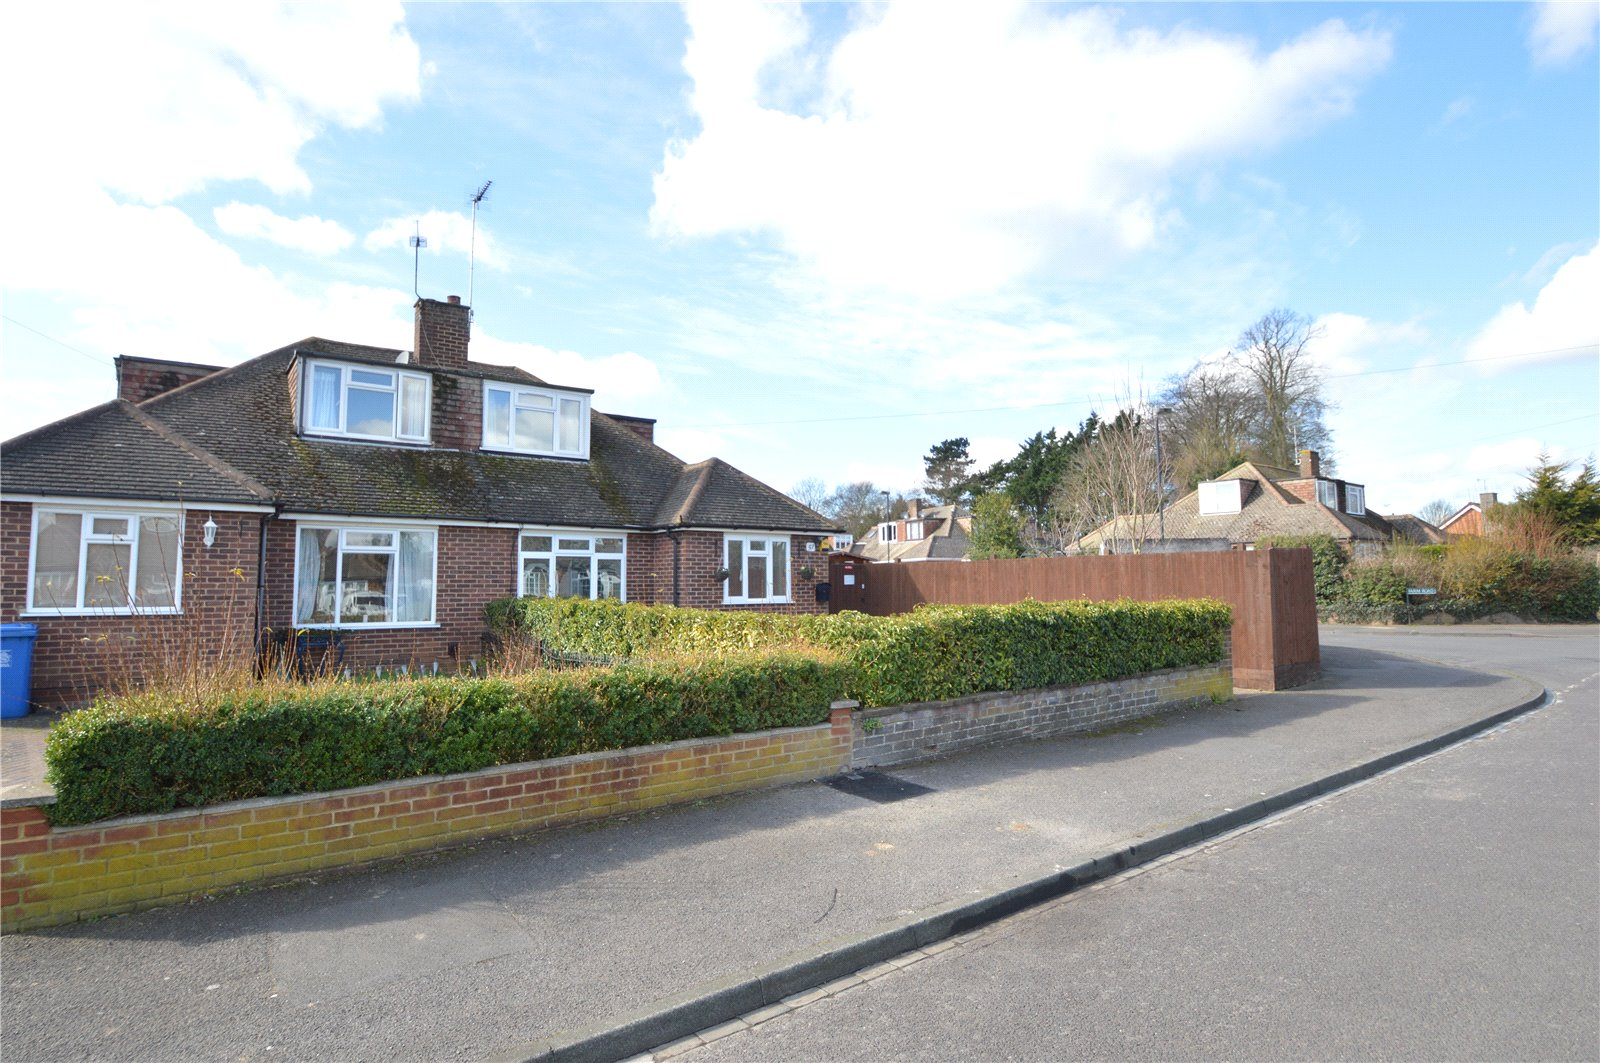 3 Bedrooms Semi Detached Bungalow for sale in Headington Road, Maidenhead, Berkshire, SL6